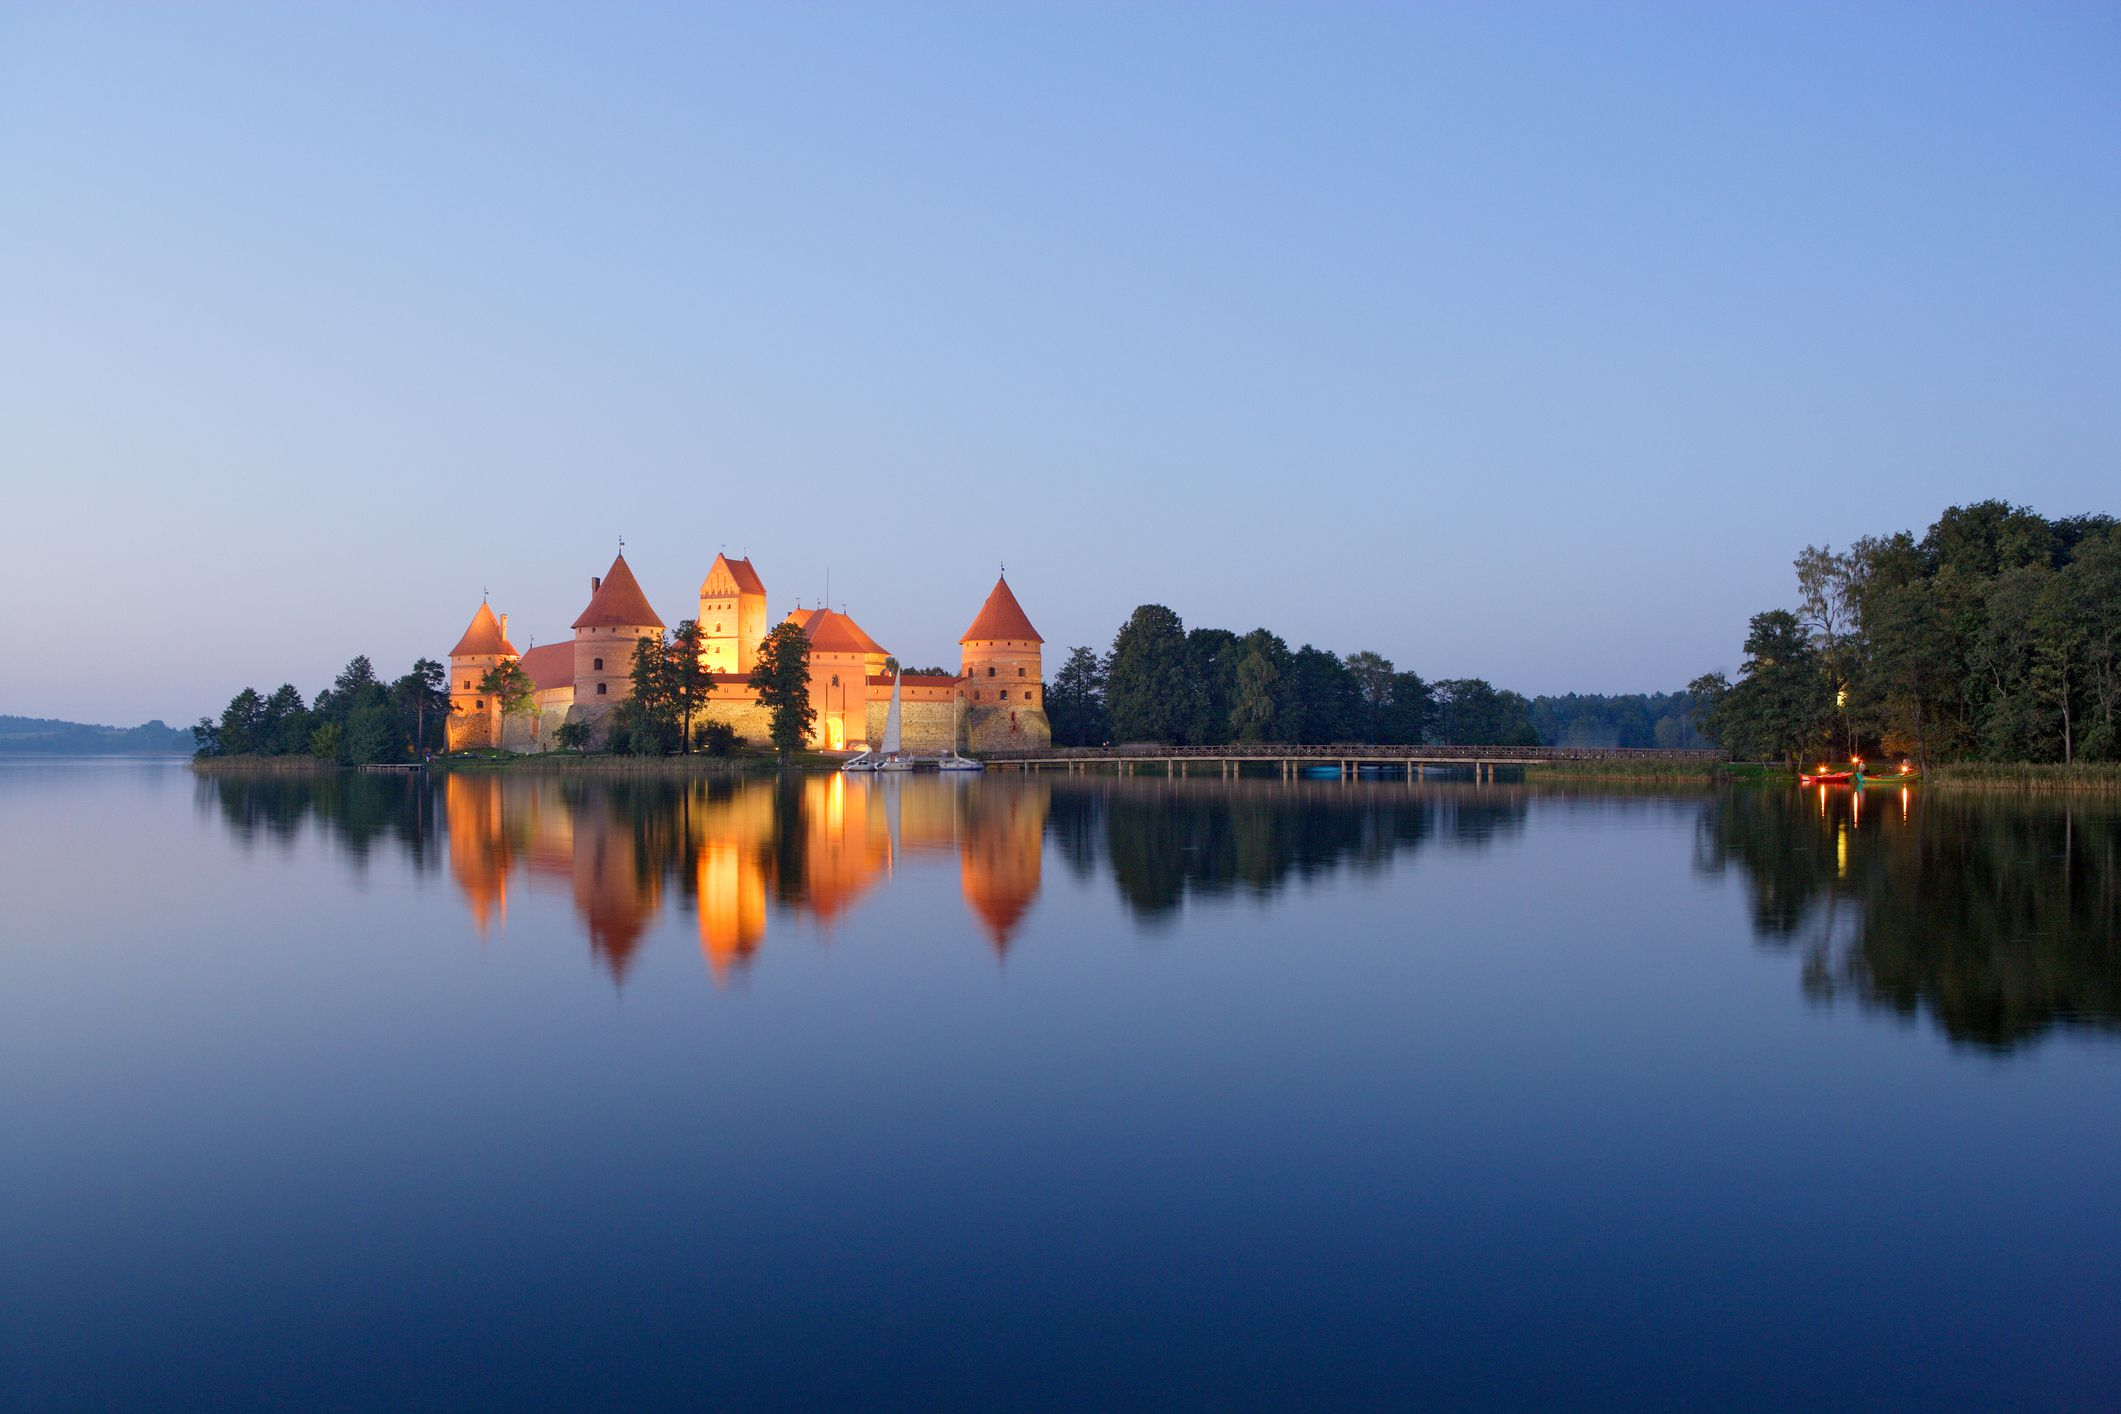 Planning A Road Trip >> Trakai Castle: Lithuania's Famous Medieval Stronghold